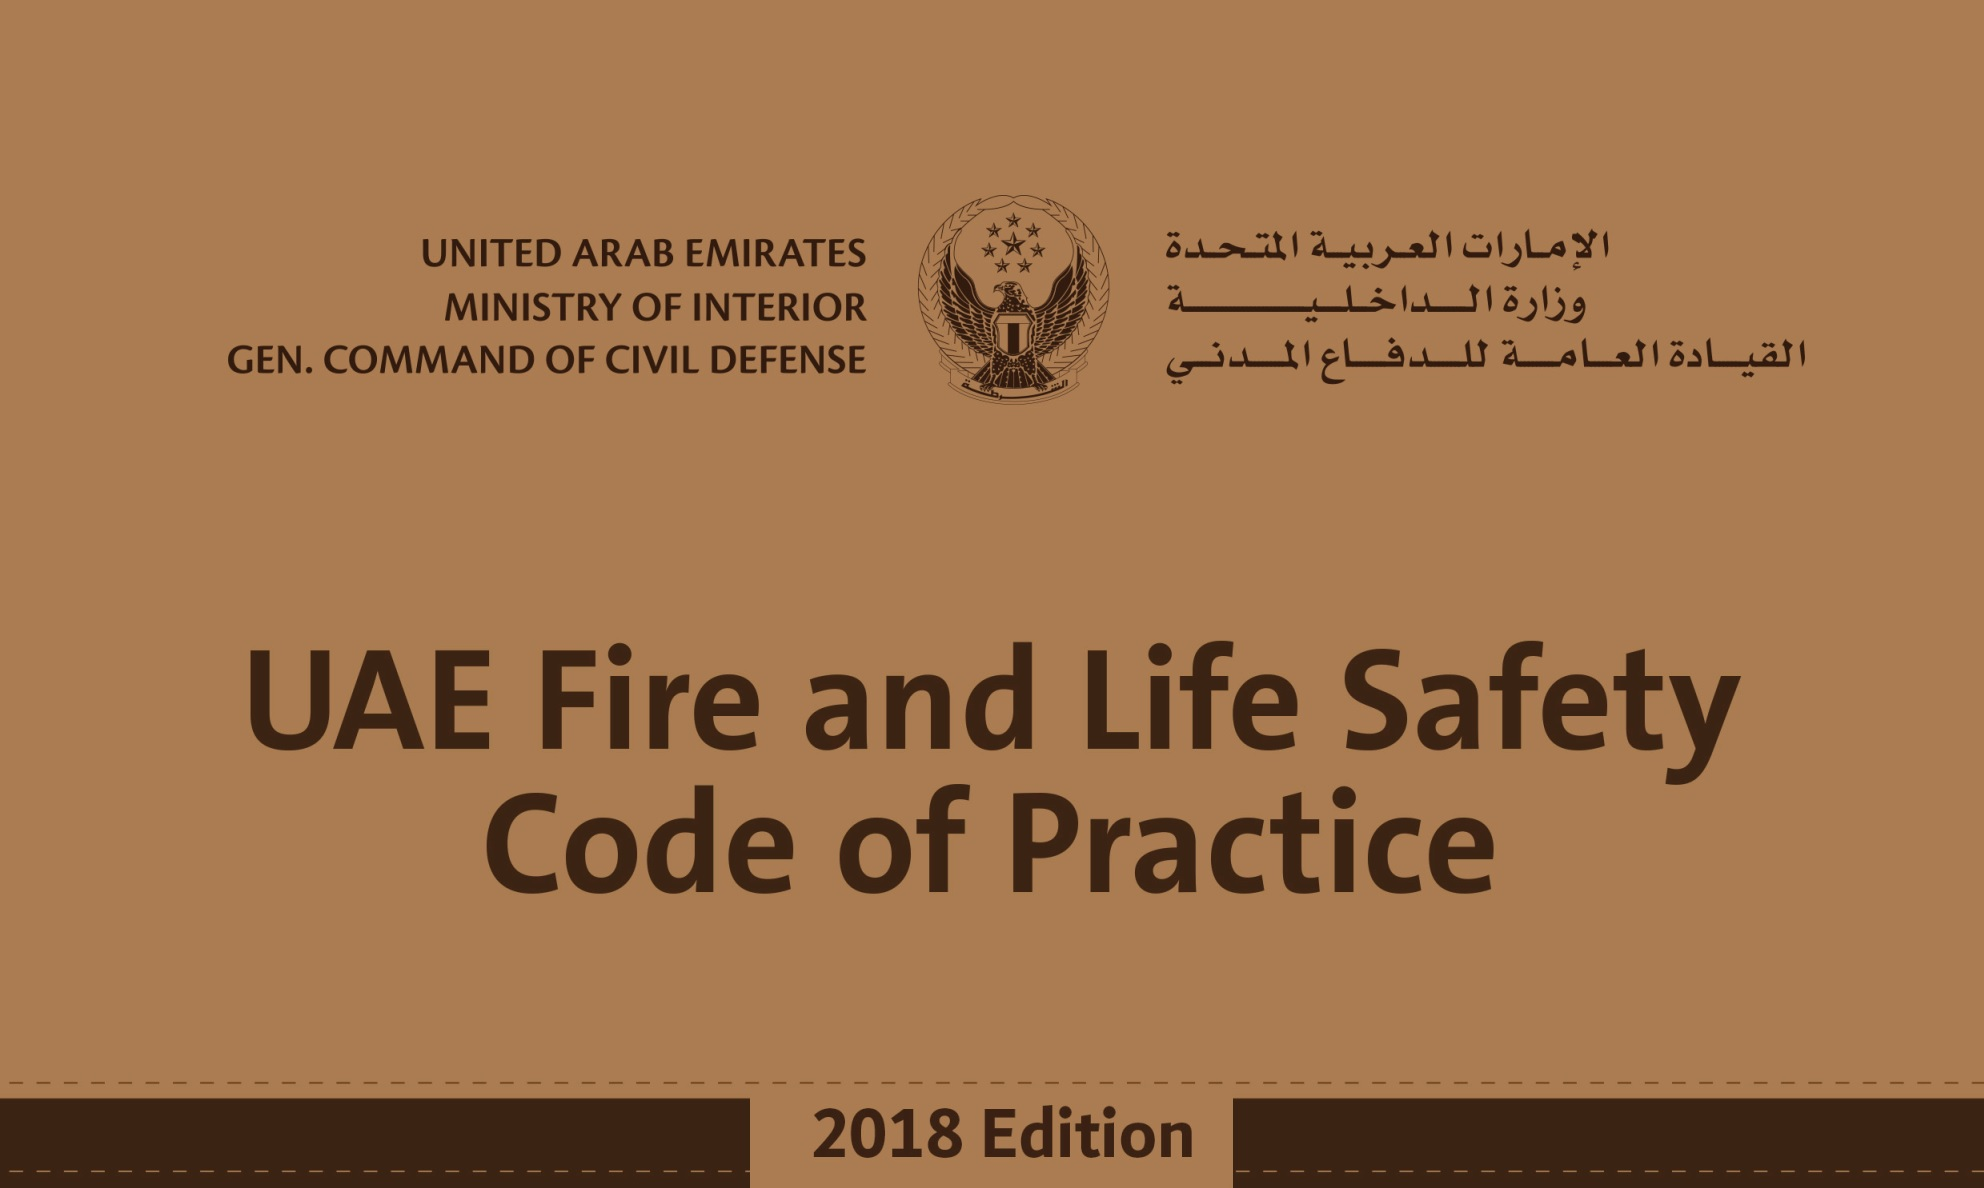 Key changes to UAE Fire & Life Safety Code of Practice 2018 Edition